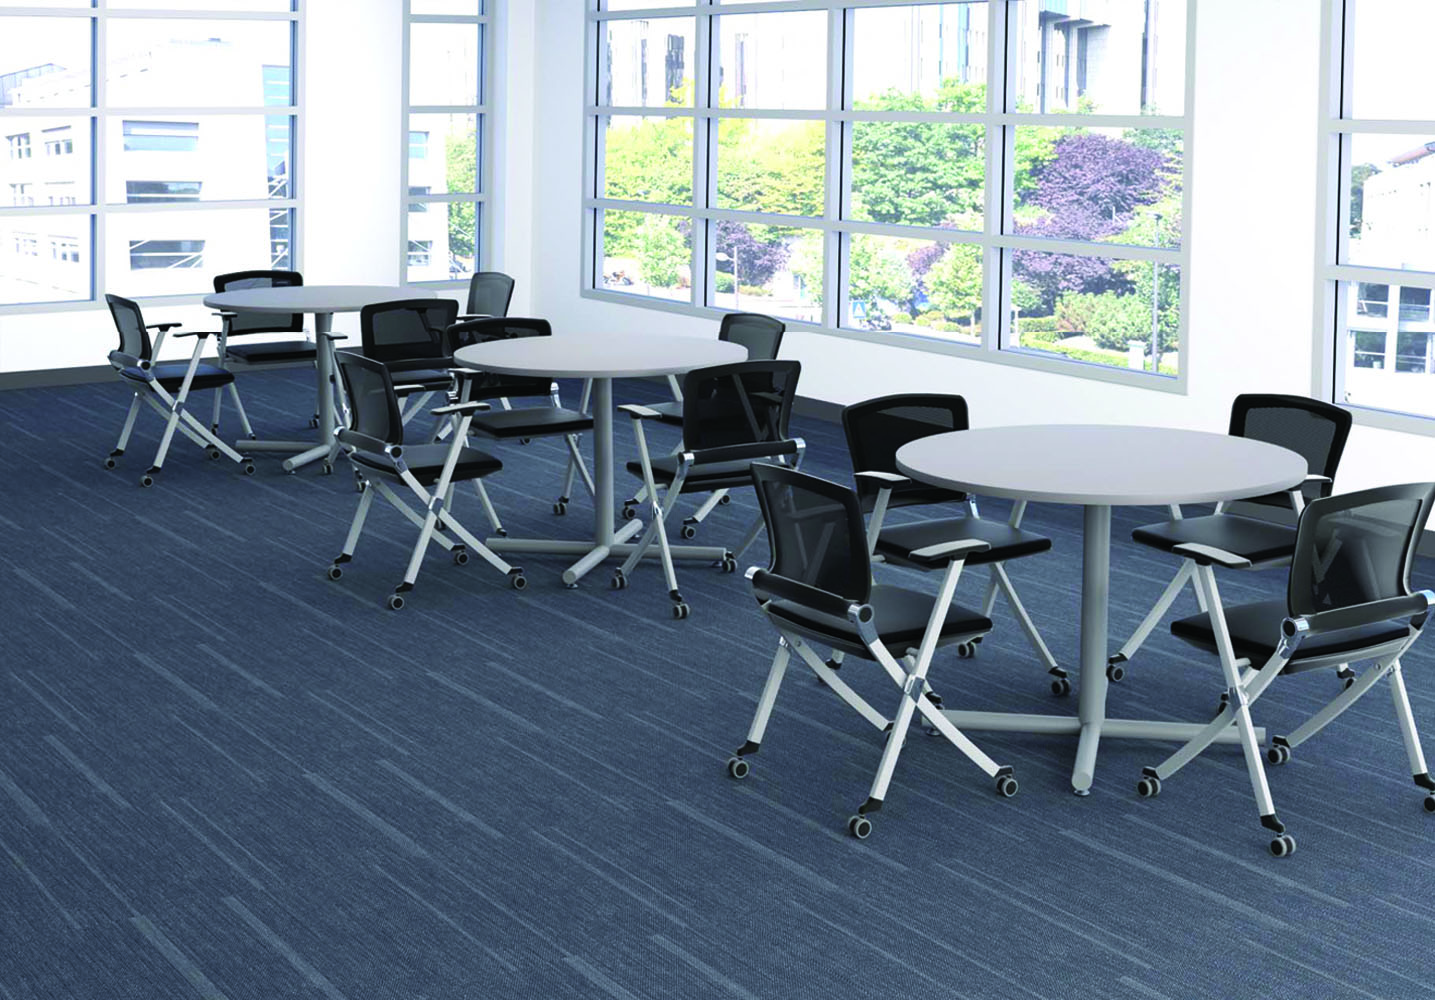 Cafe Chairs And Tables - Multi Use Office Furniture Sets